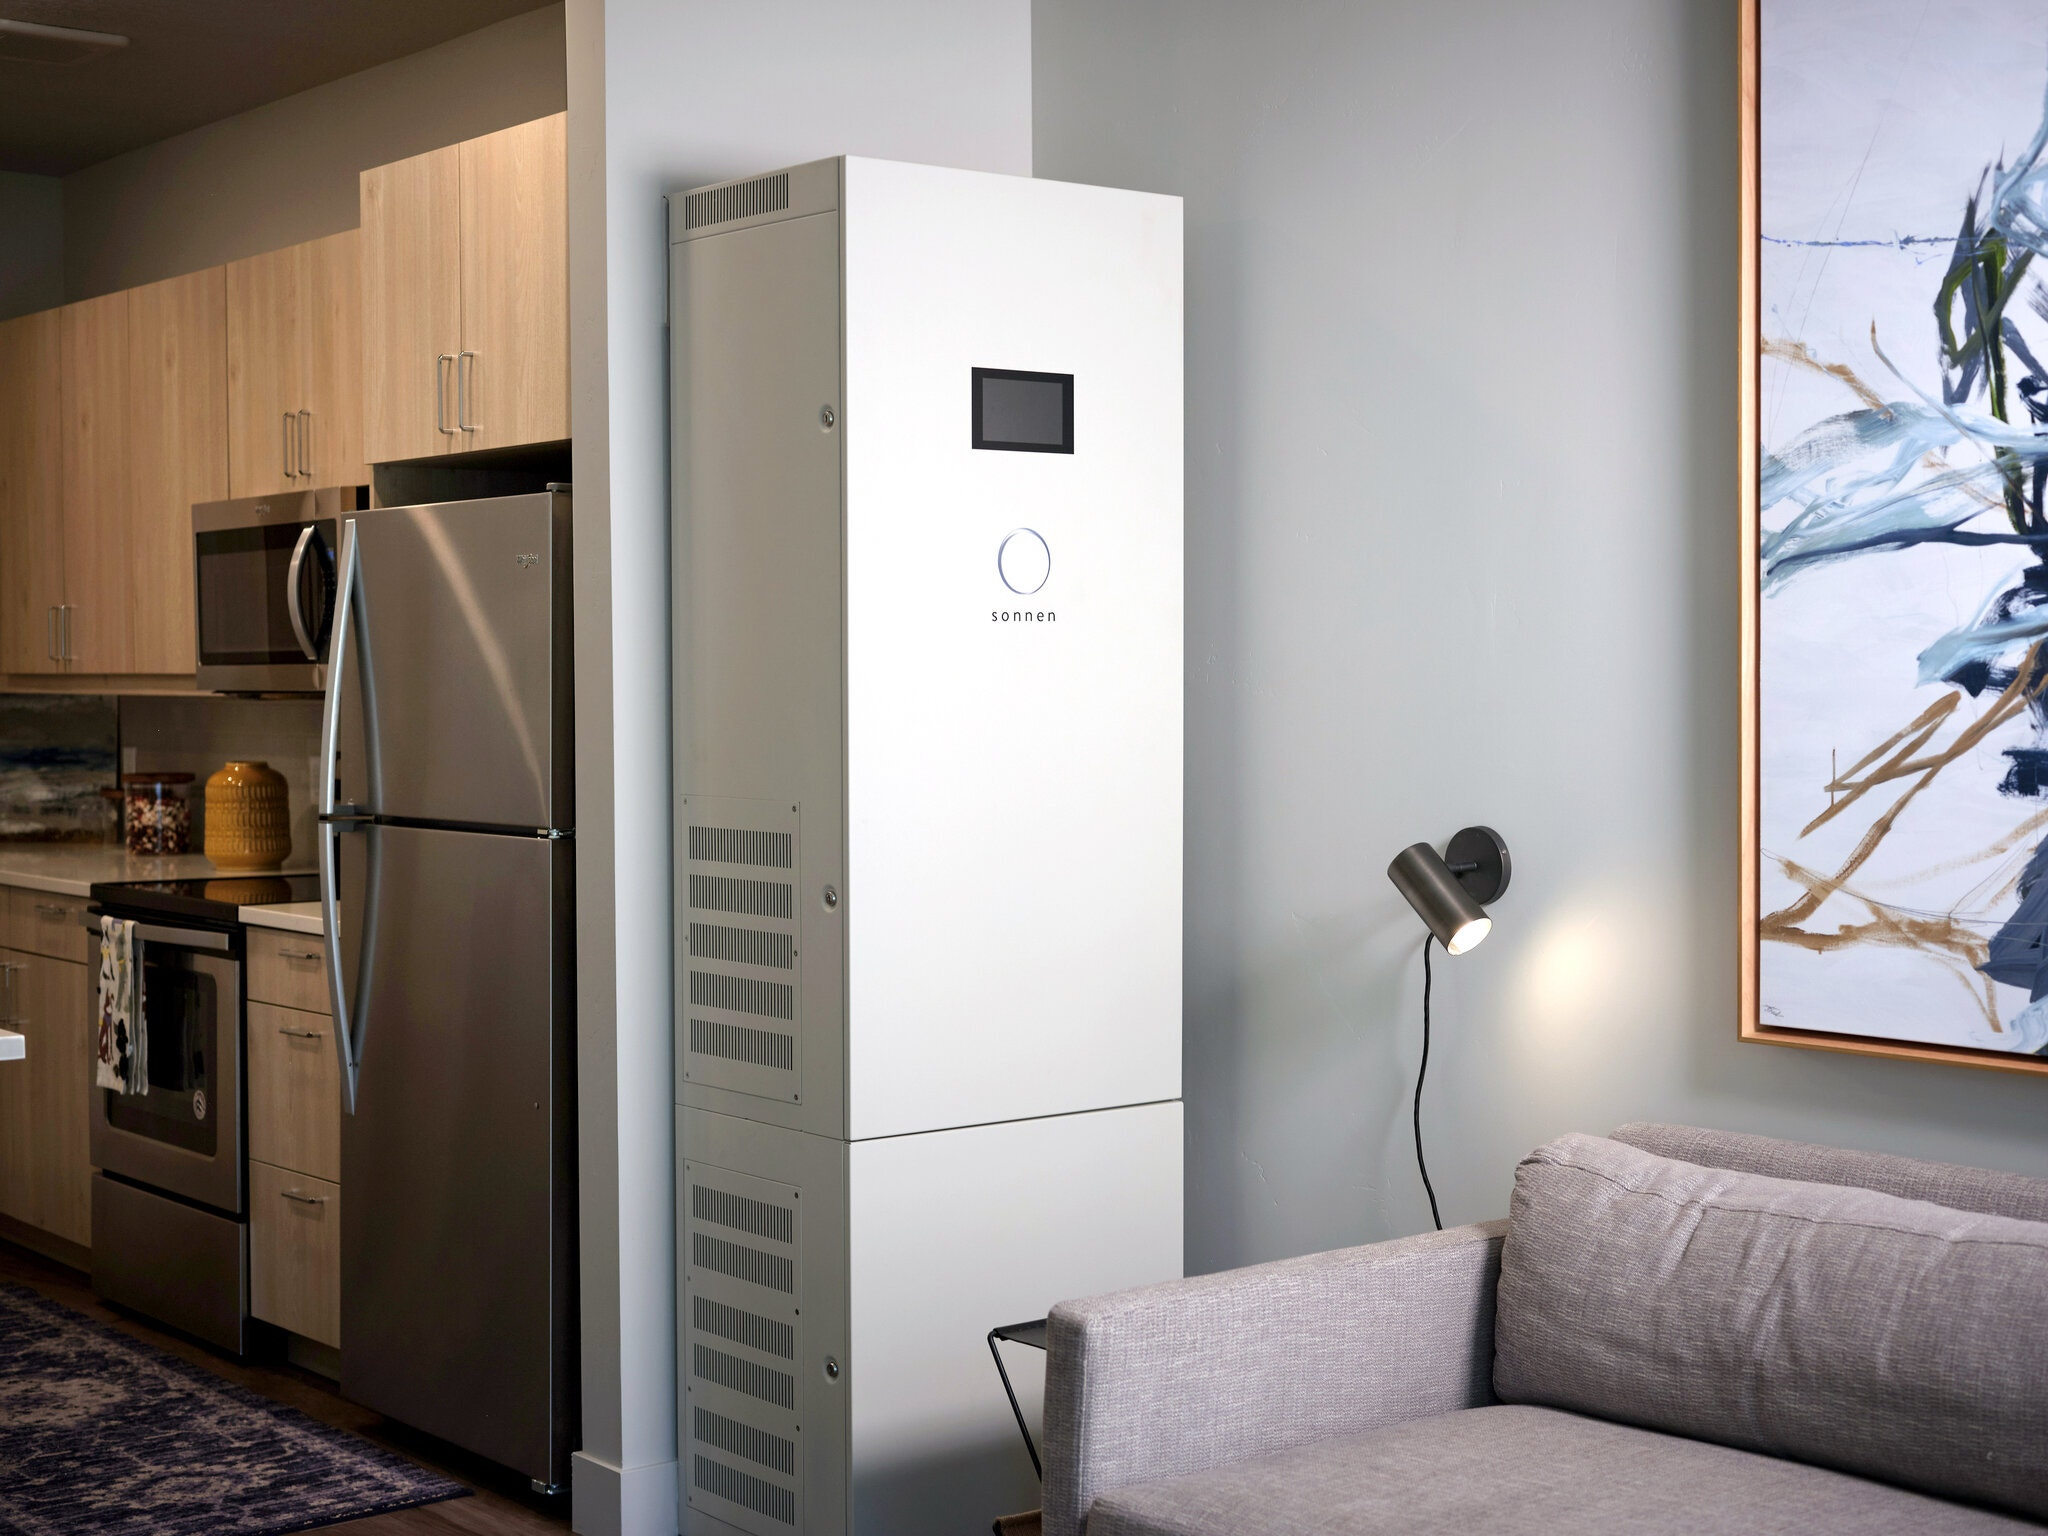 The Hottest Amenity From Developers? A Power Plant Made of Batteries